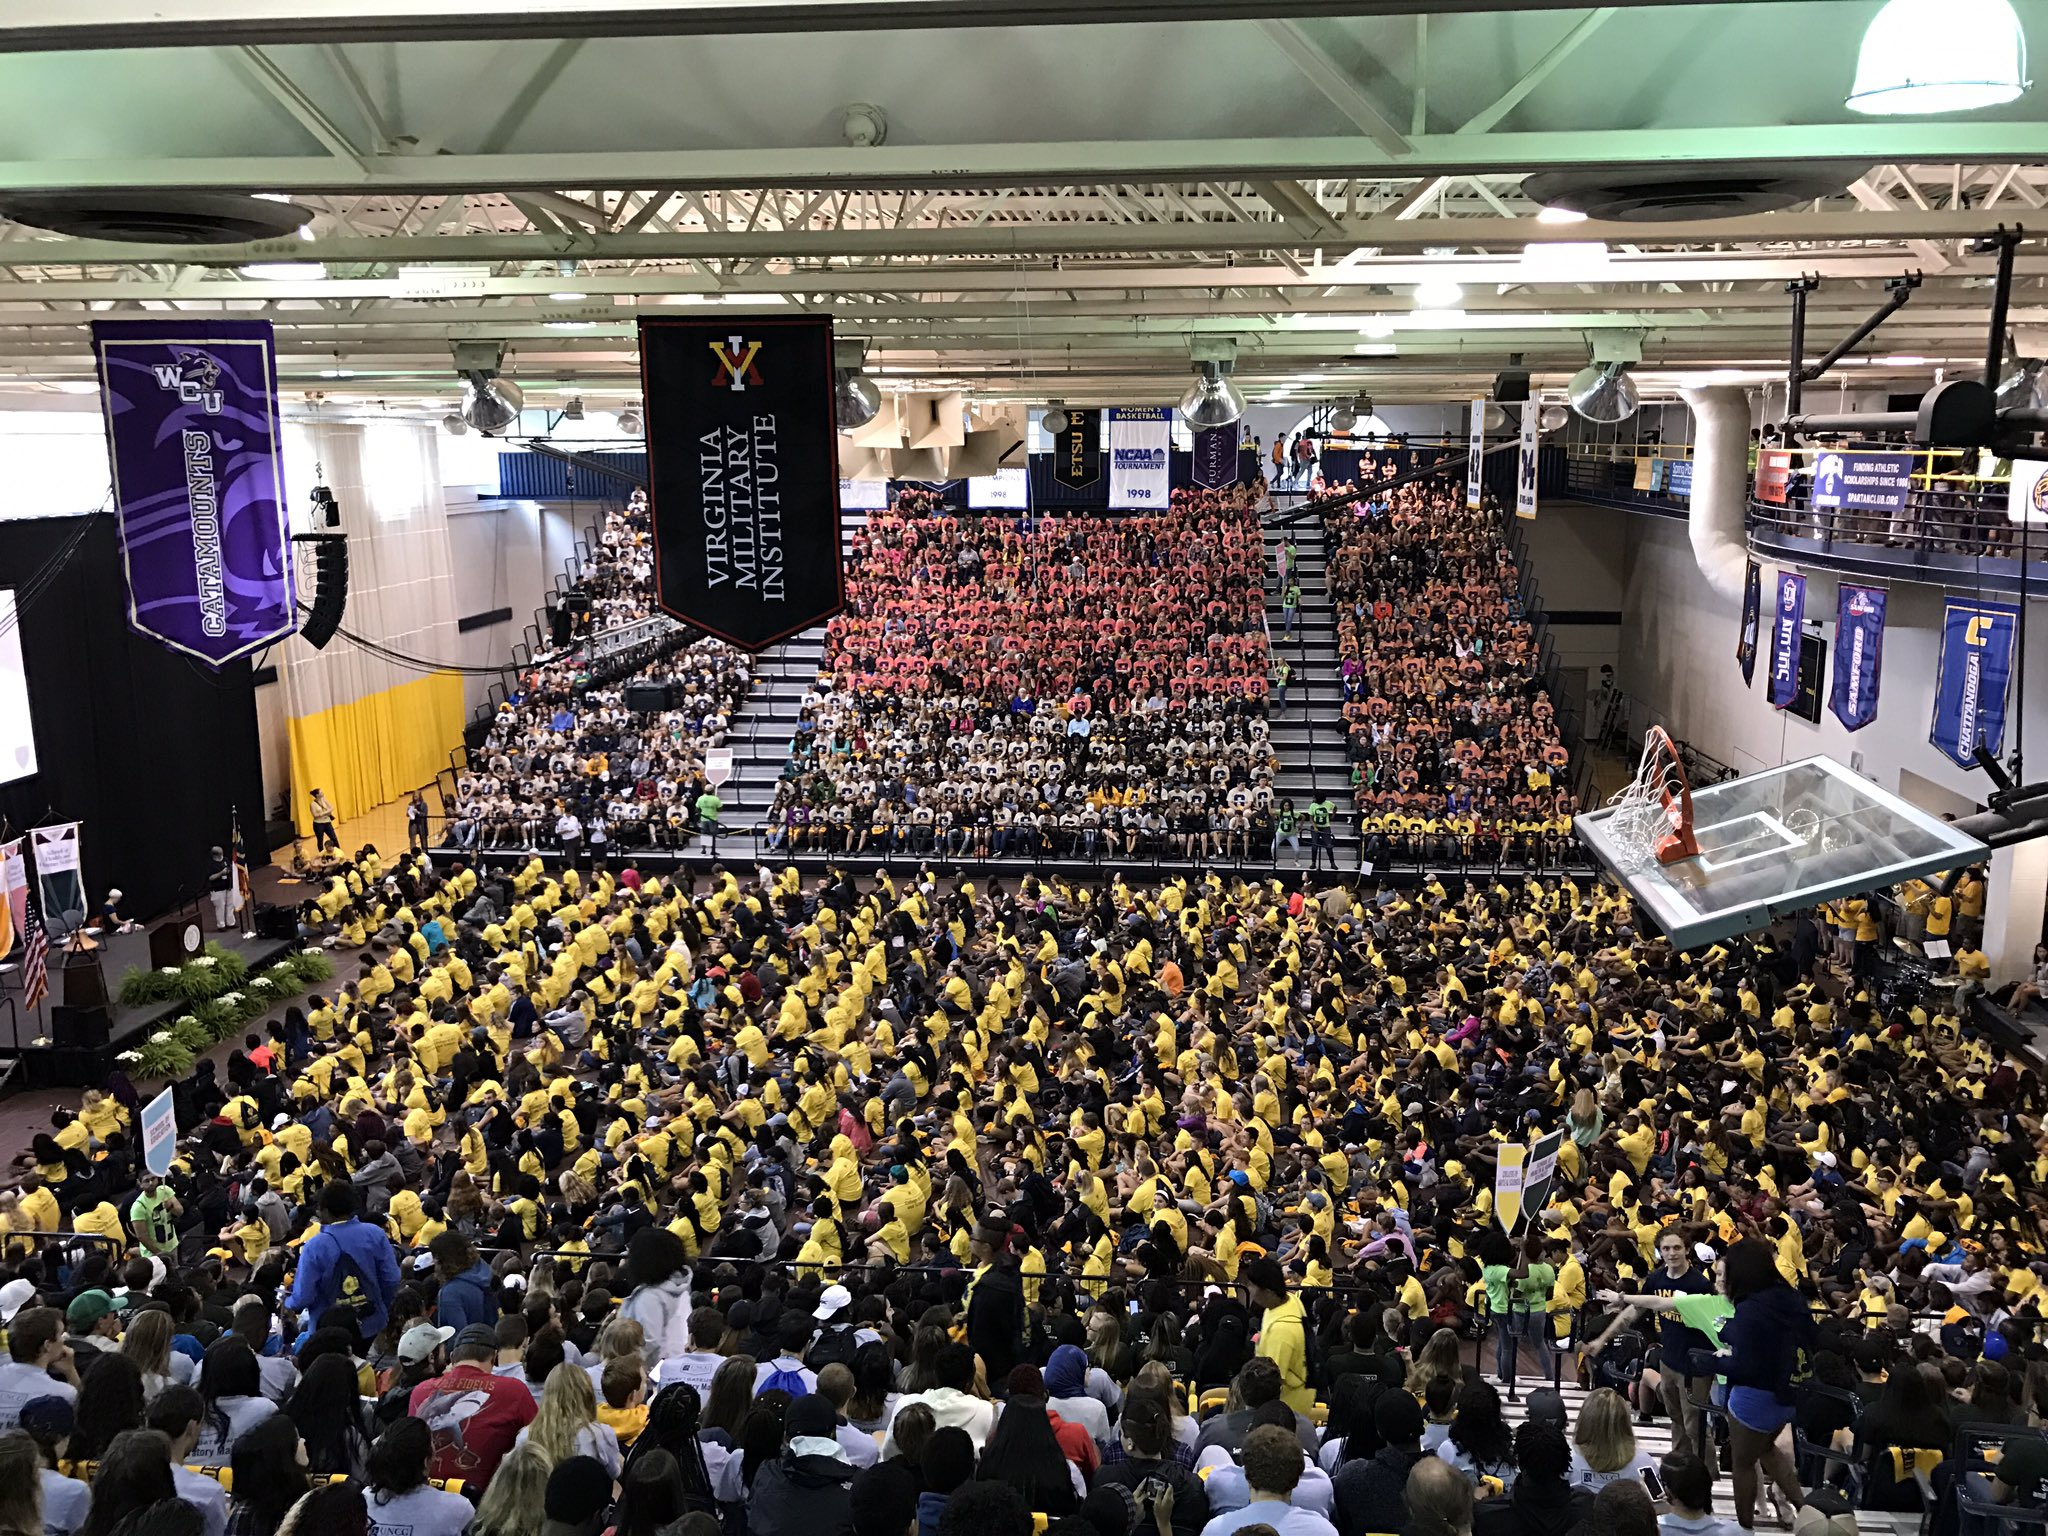 Great first look at our incoming students here at UNCG... #NAV1GATEUNCG #letsgoG https://t.co/Gjto4YeYVk